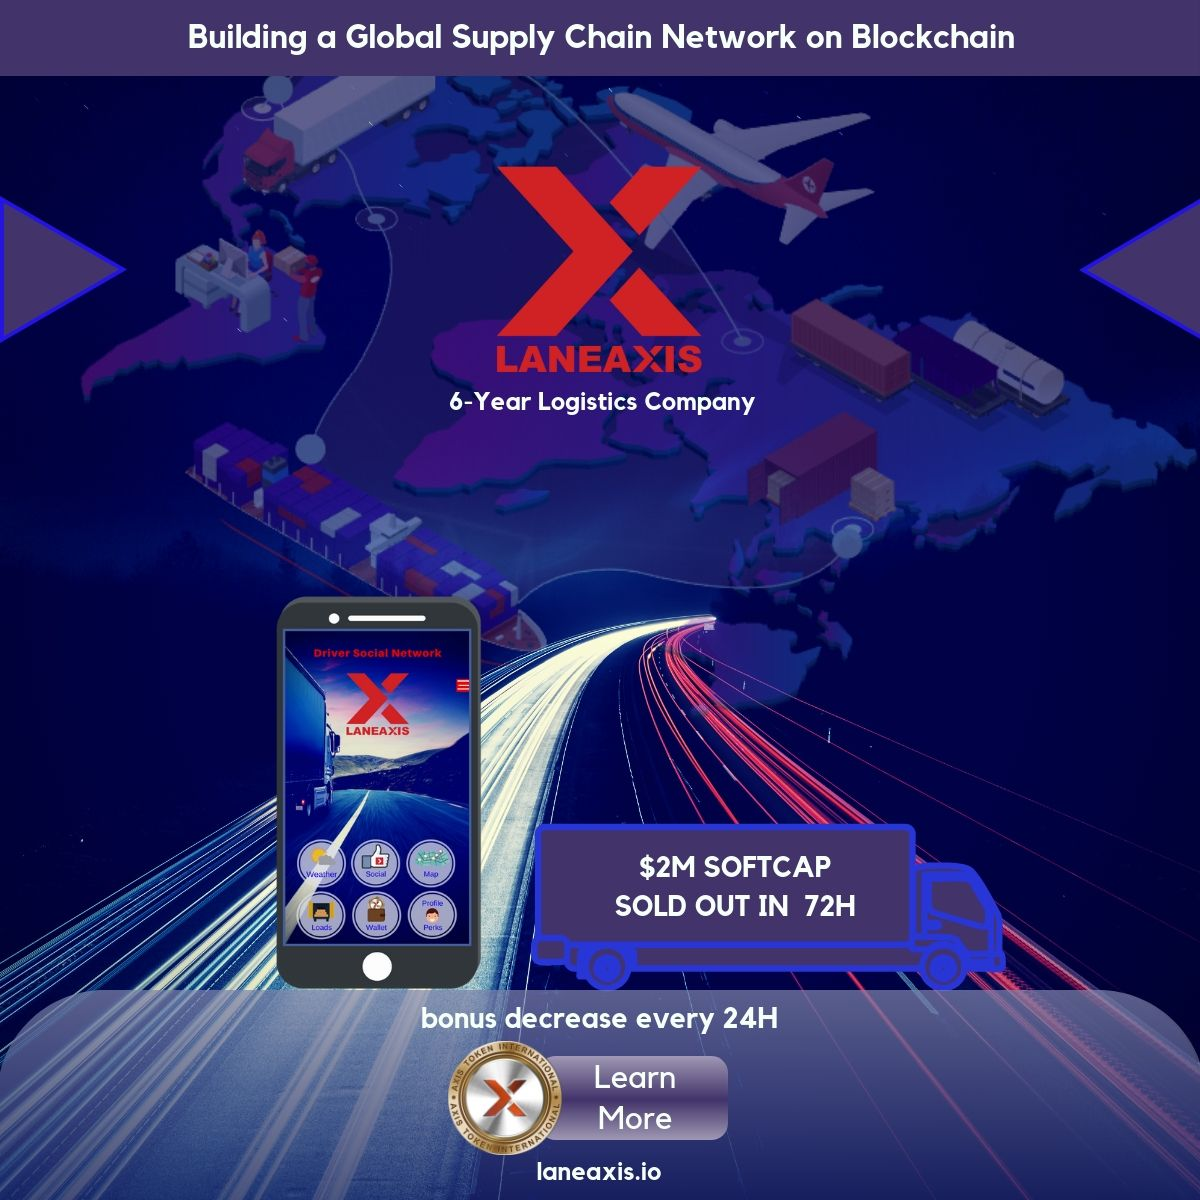 LaneAxis Building Tokenized Driver Social Network To